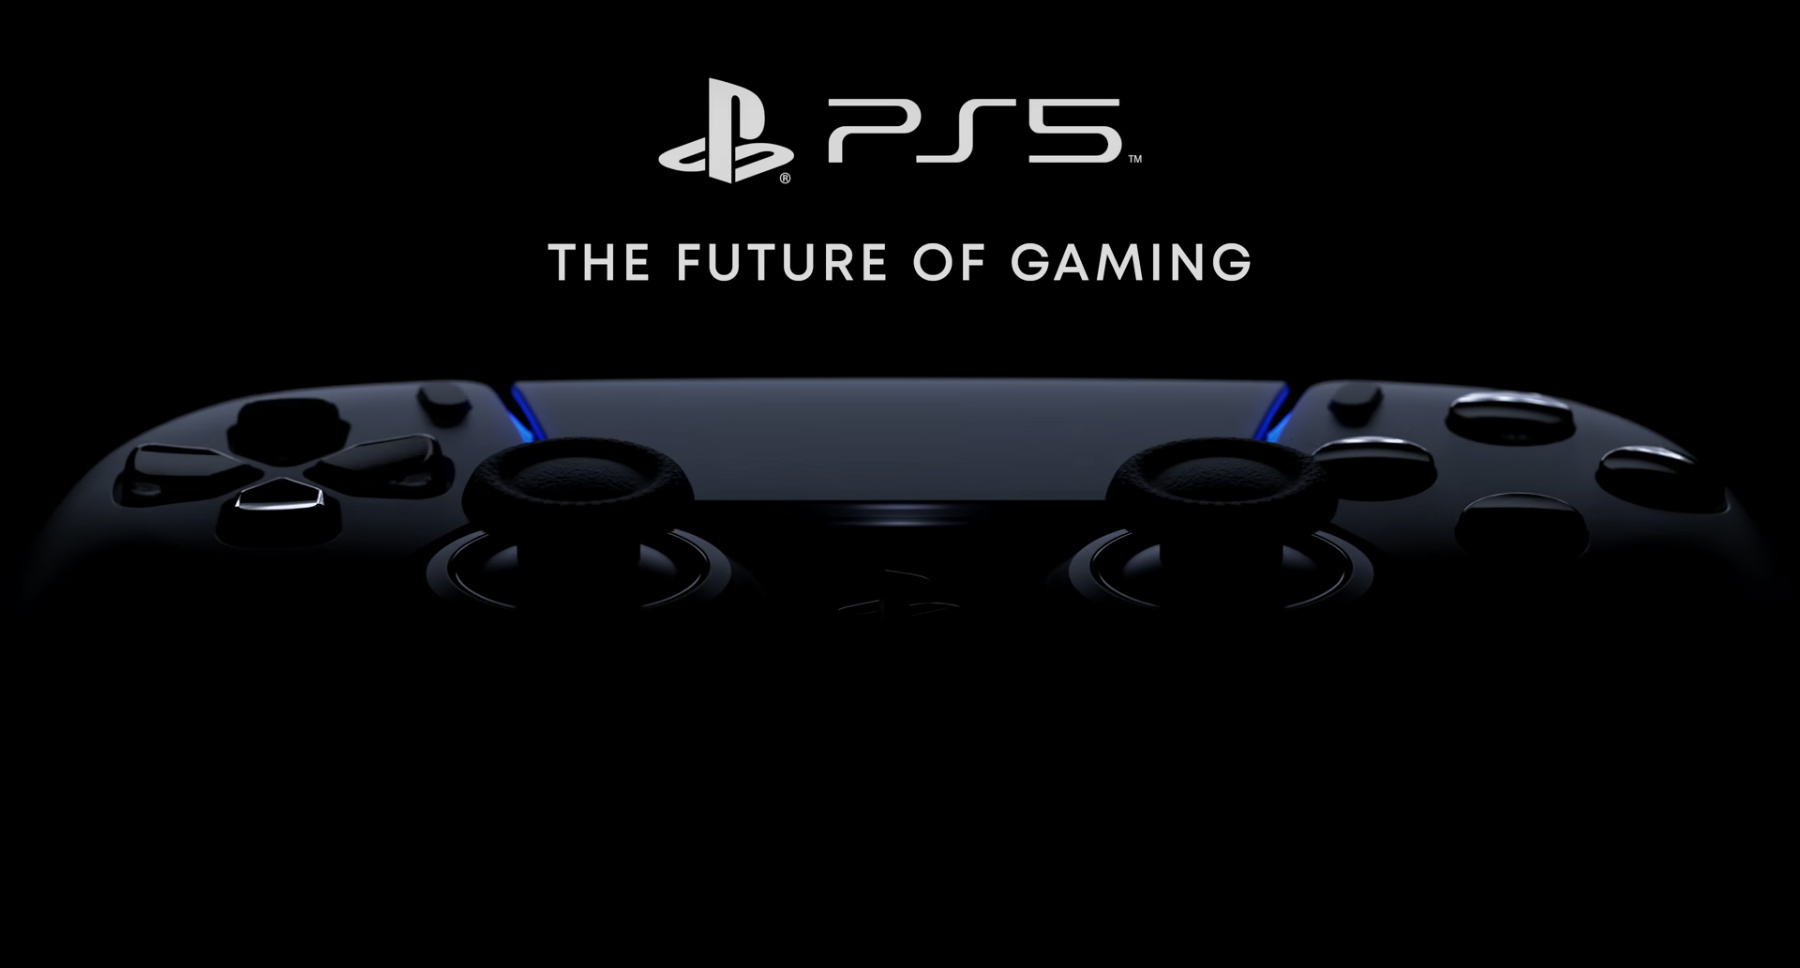 PS5 Reveal Event Confirmed for This Week